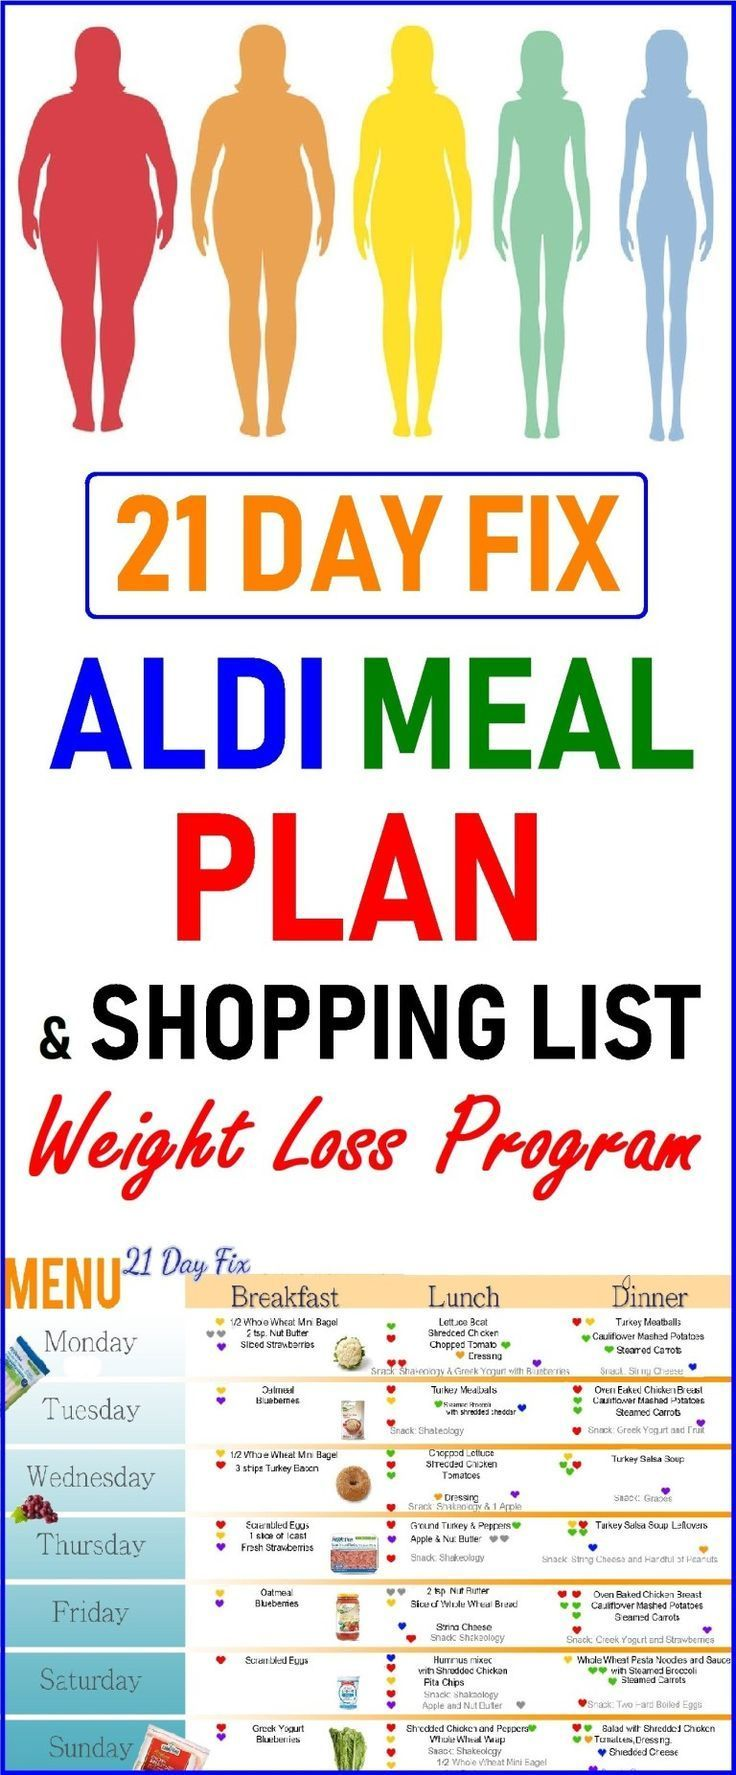 21 Day Fix ALDI Meal Plan and Shopping List  Weight Loss Program